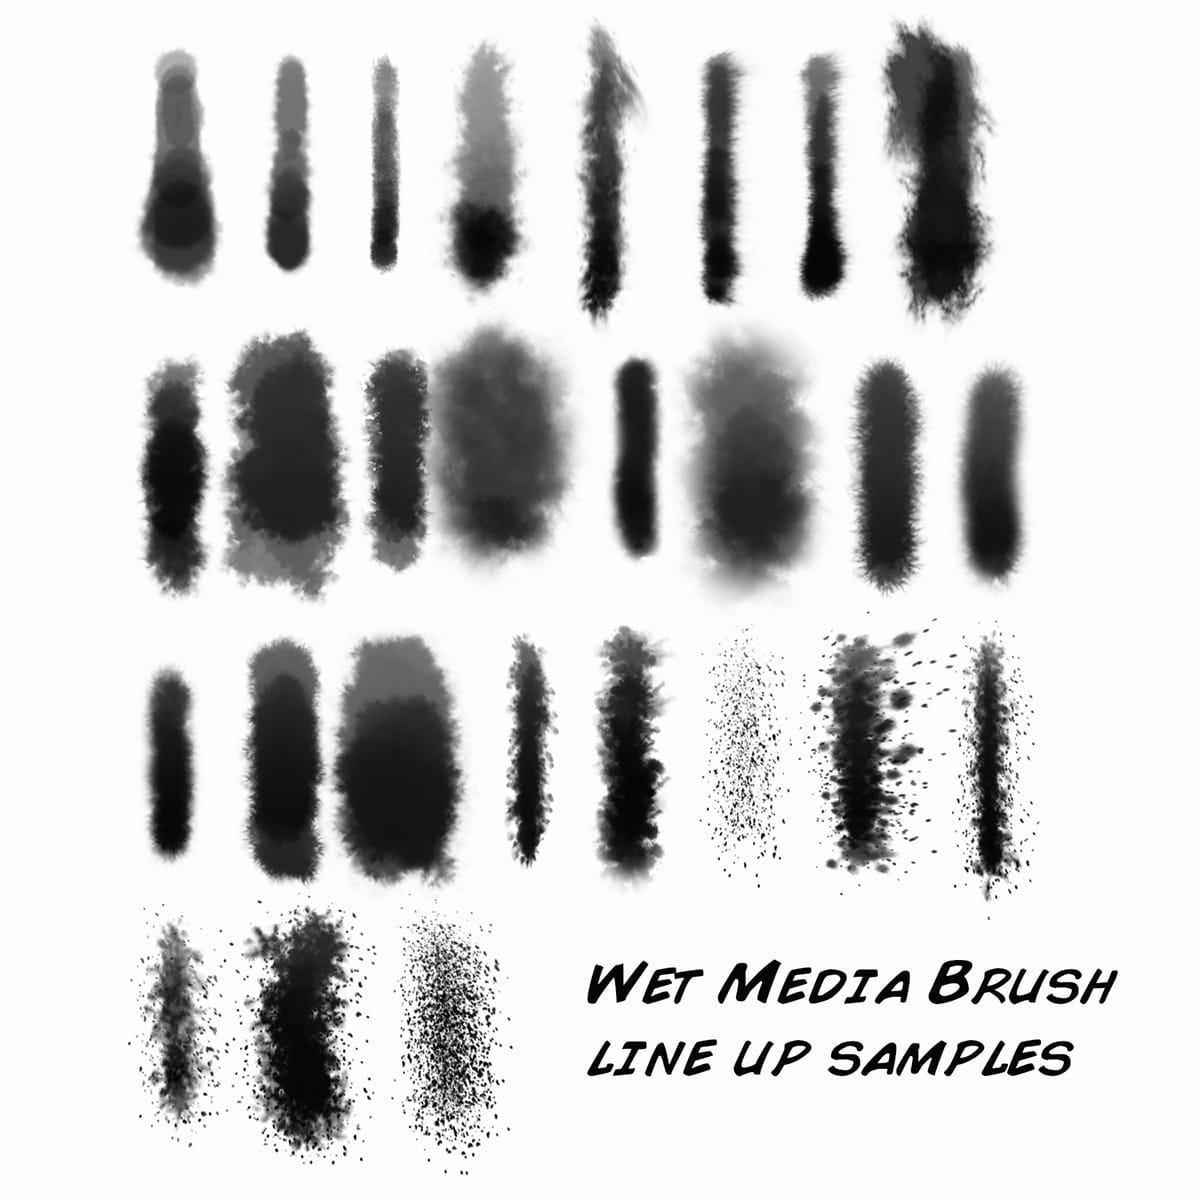 Aaron Blaise Custom Photoshop Wet Media Brushes